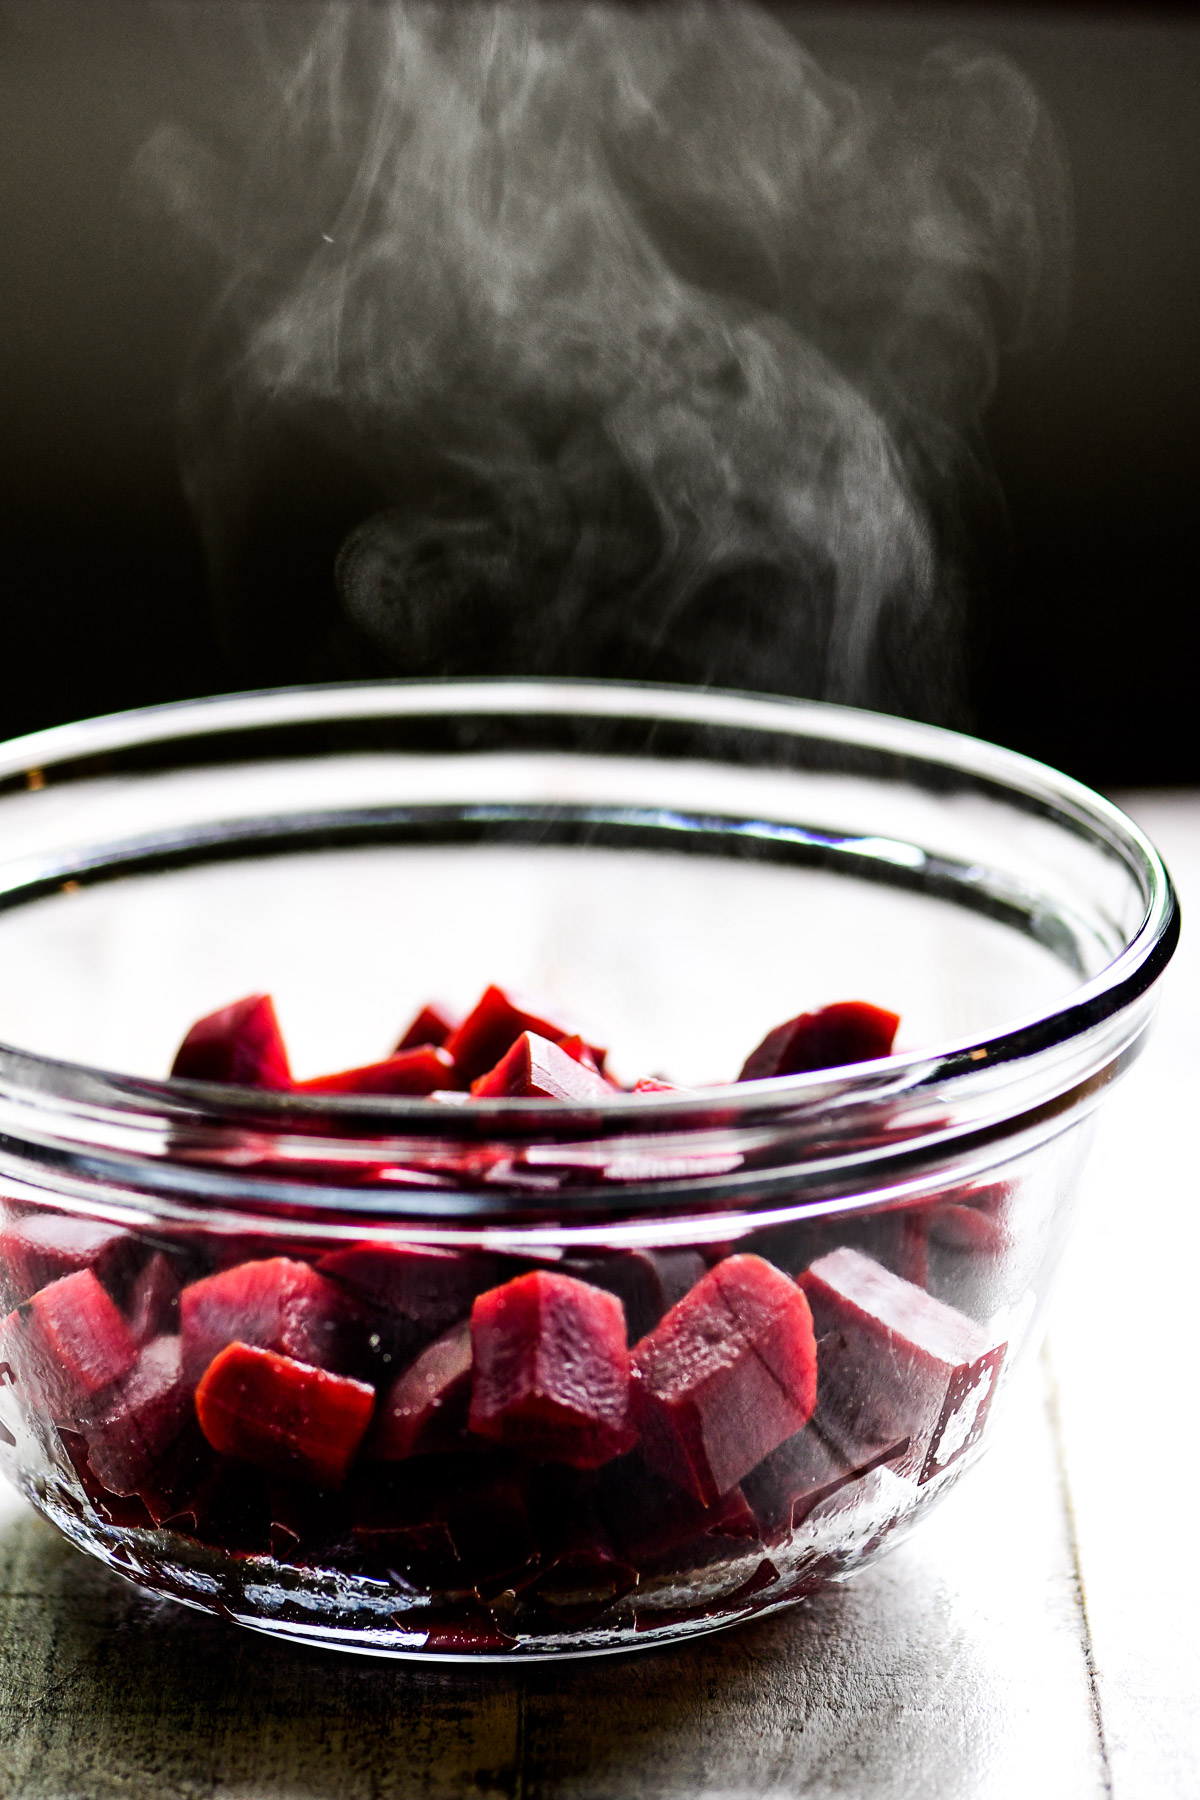 Chopped beets, with steam rising, in a glass bowl